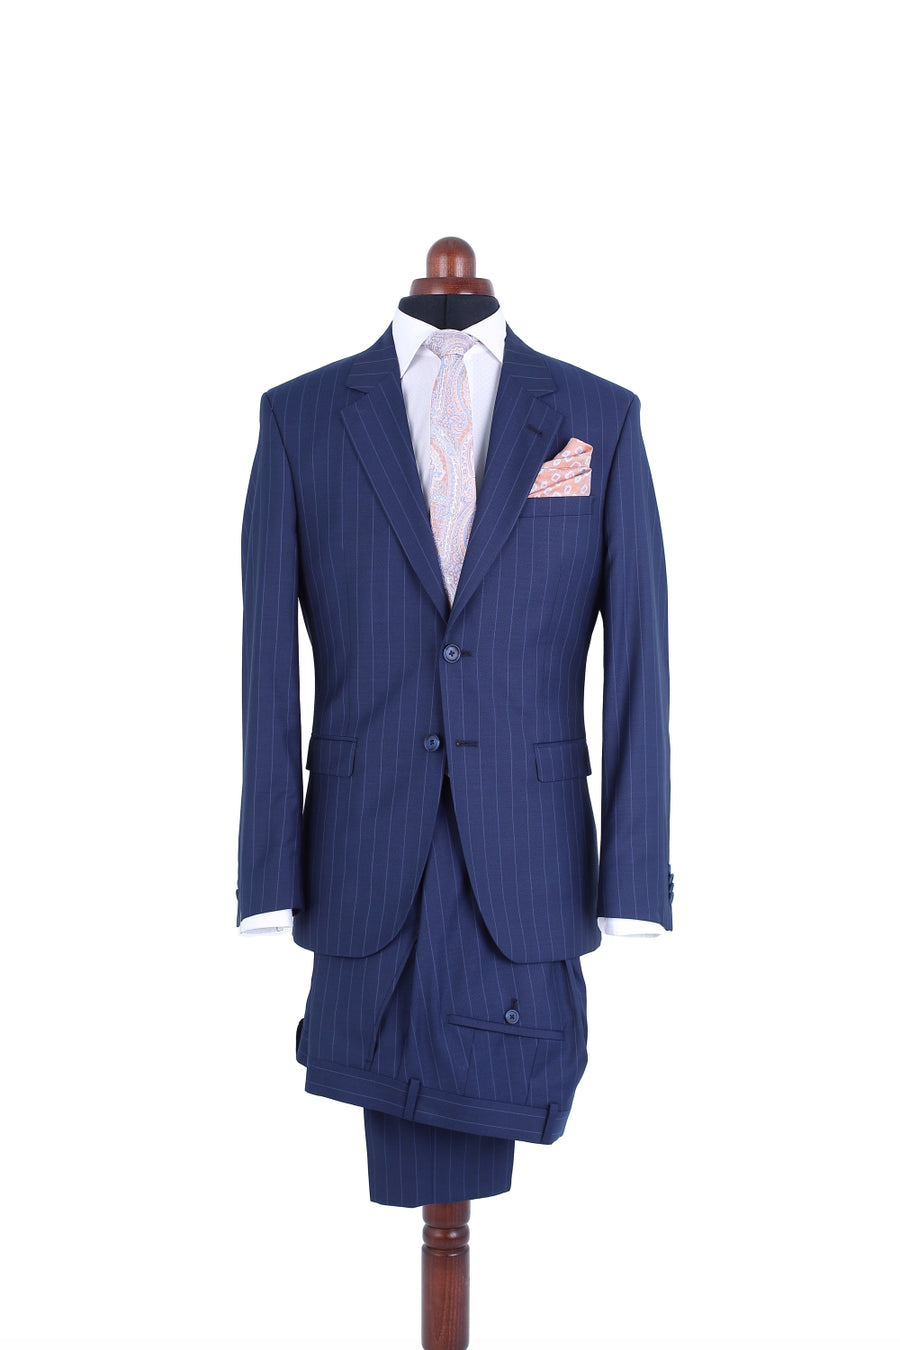 BLUE PIN STRIPED SUIT